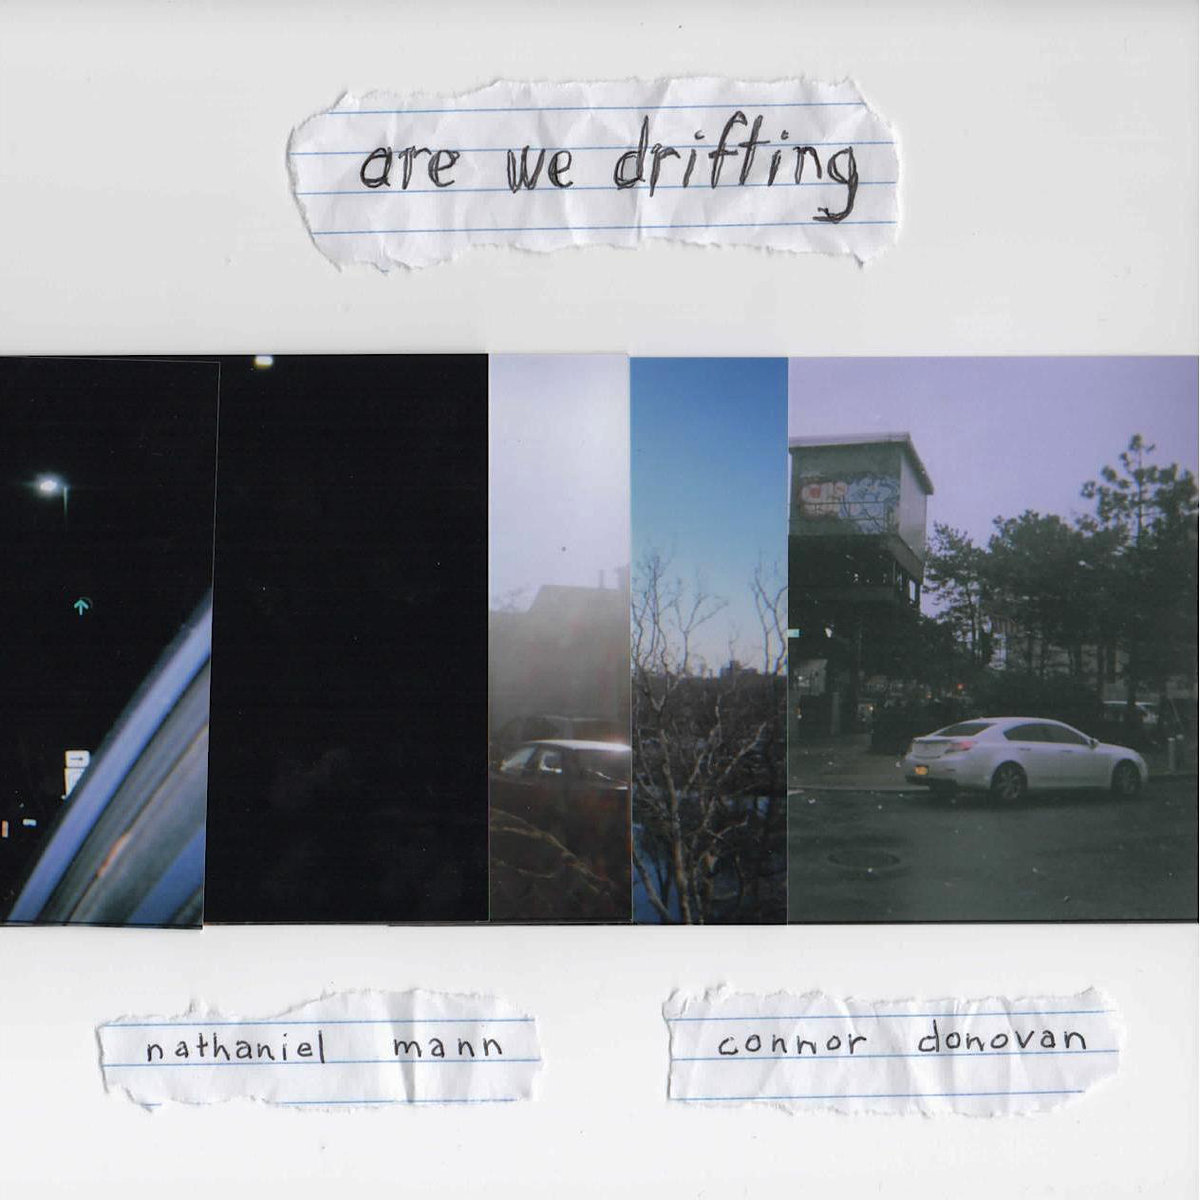 Free download: Connor Donovan & Nathaniel Mann – Are We Drifting